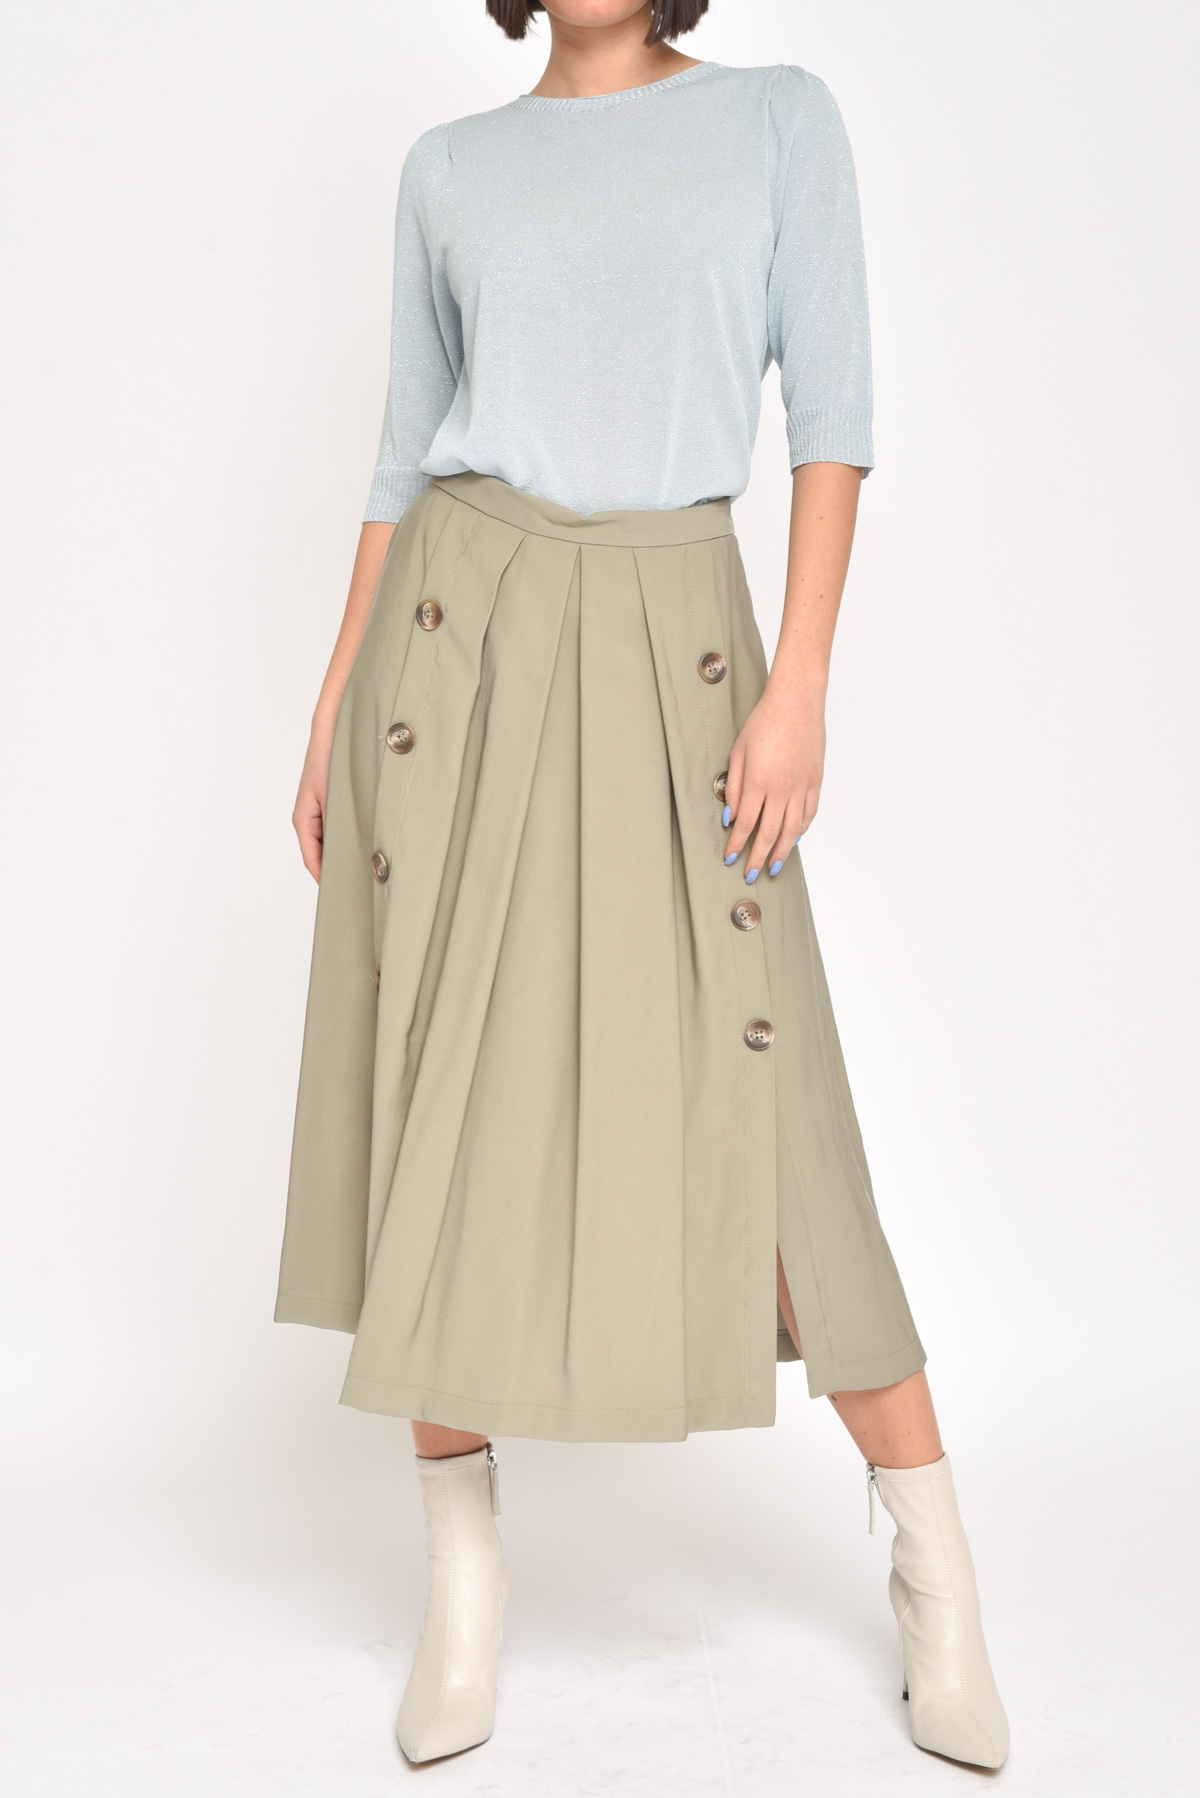 SKIRT WITH BUTTONS for women - CAKI - Paquito Pronto Moda Shop Online